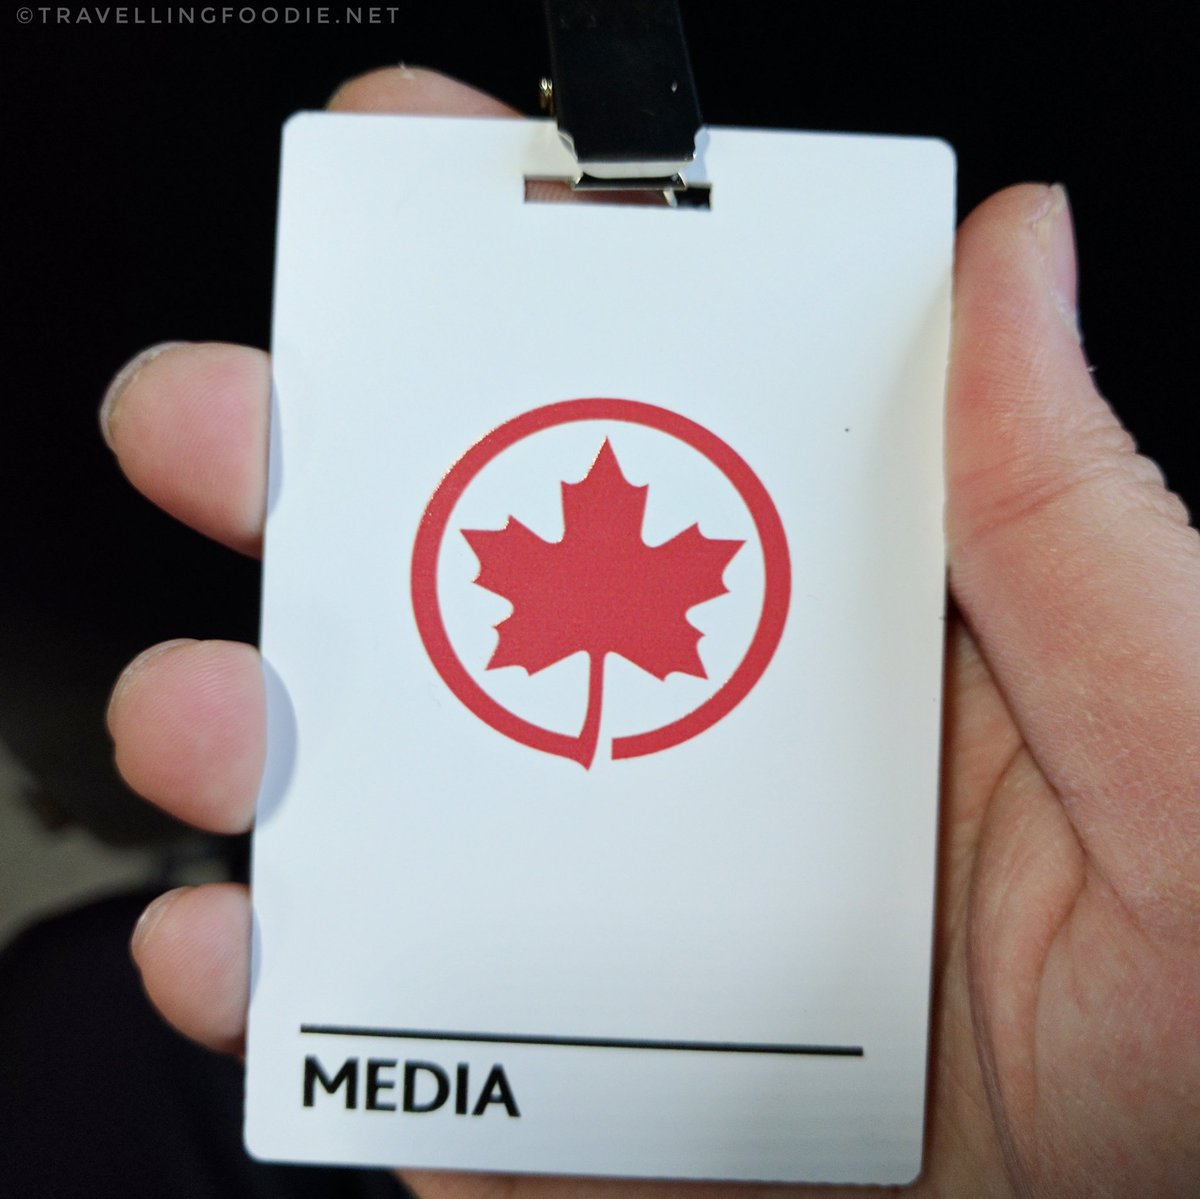 Travelling Foodie attends Air Canada Media Event